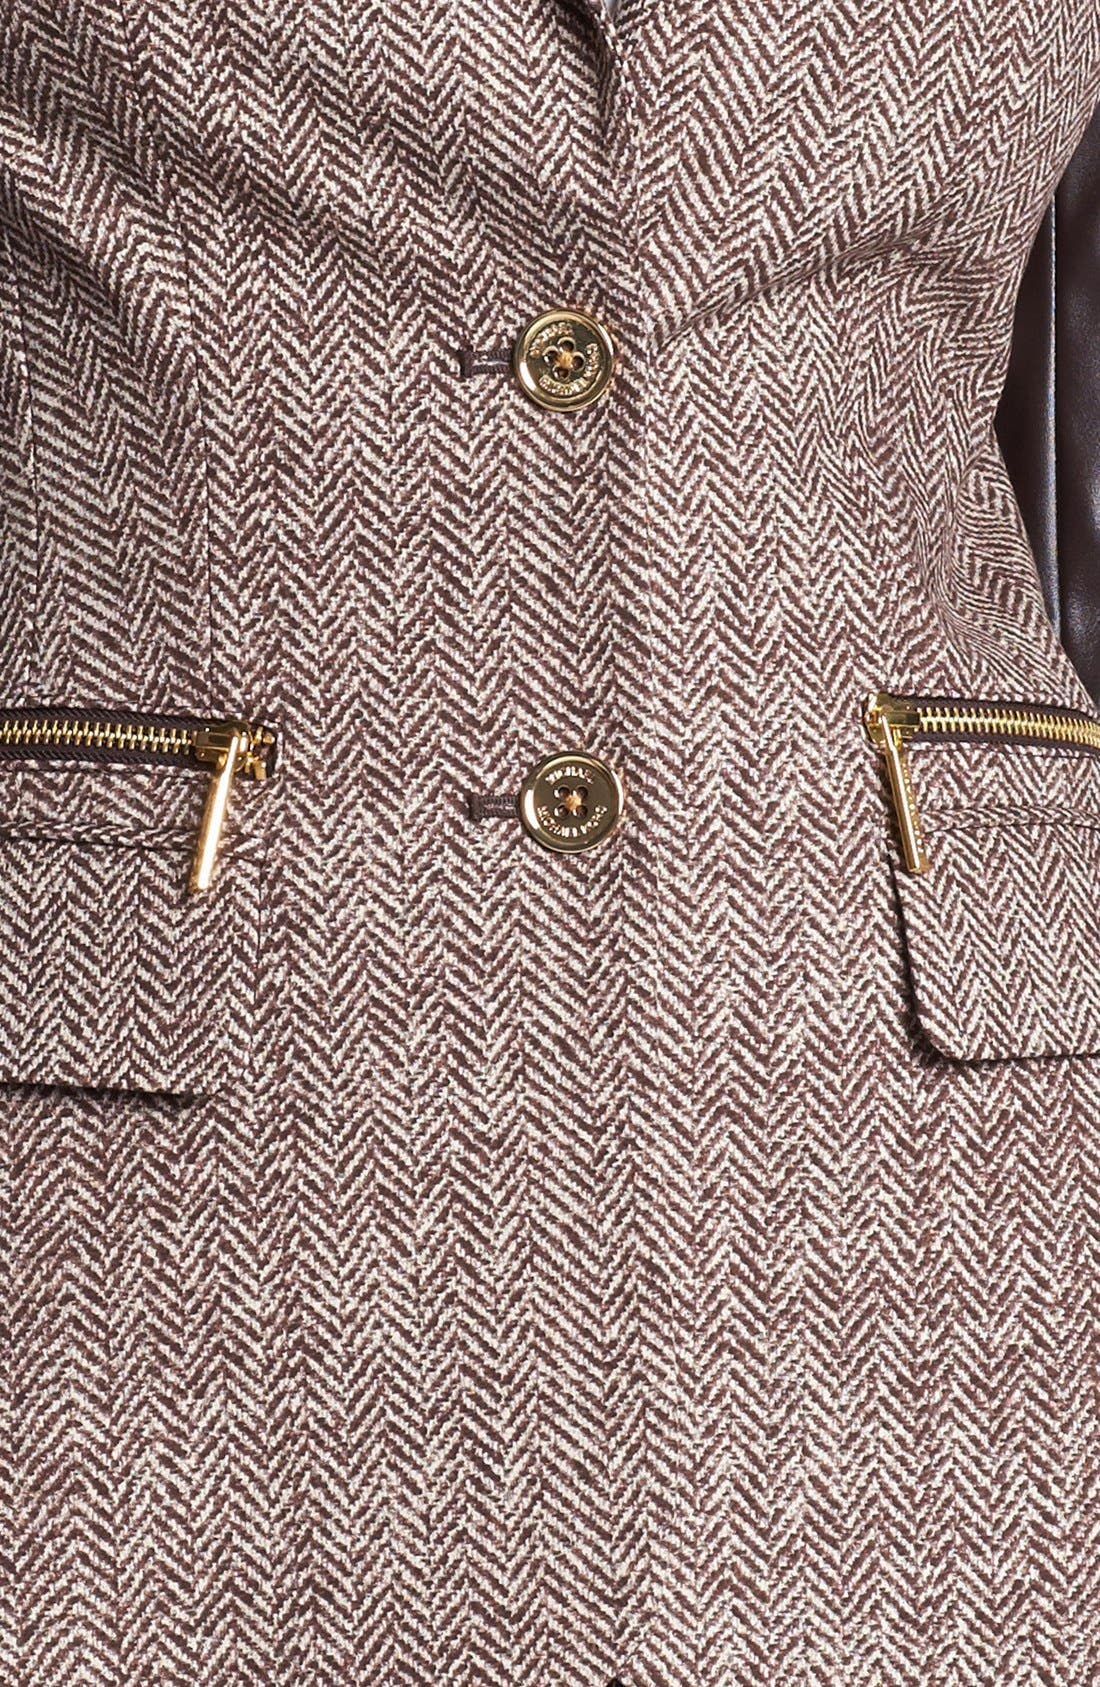 Alternate Image 3  - MICHAEL Michael Kors Faux Leather Sleeve Tweed Blazer